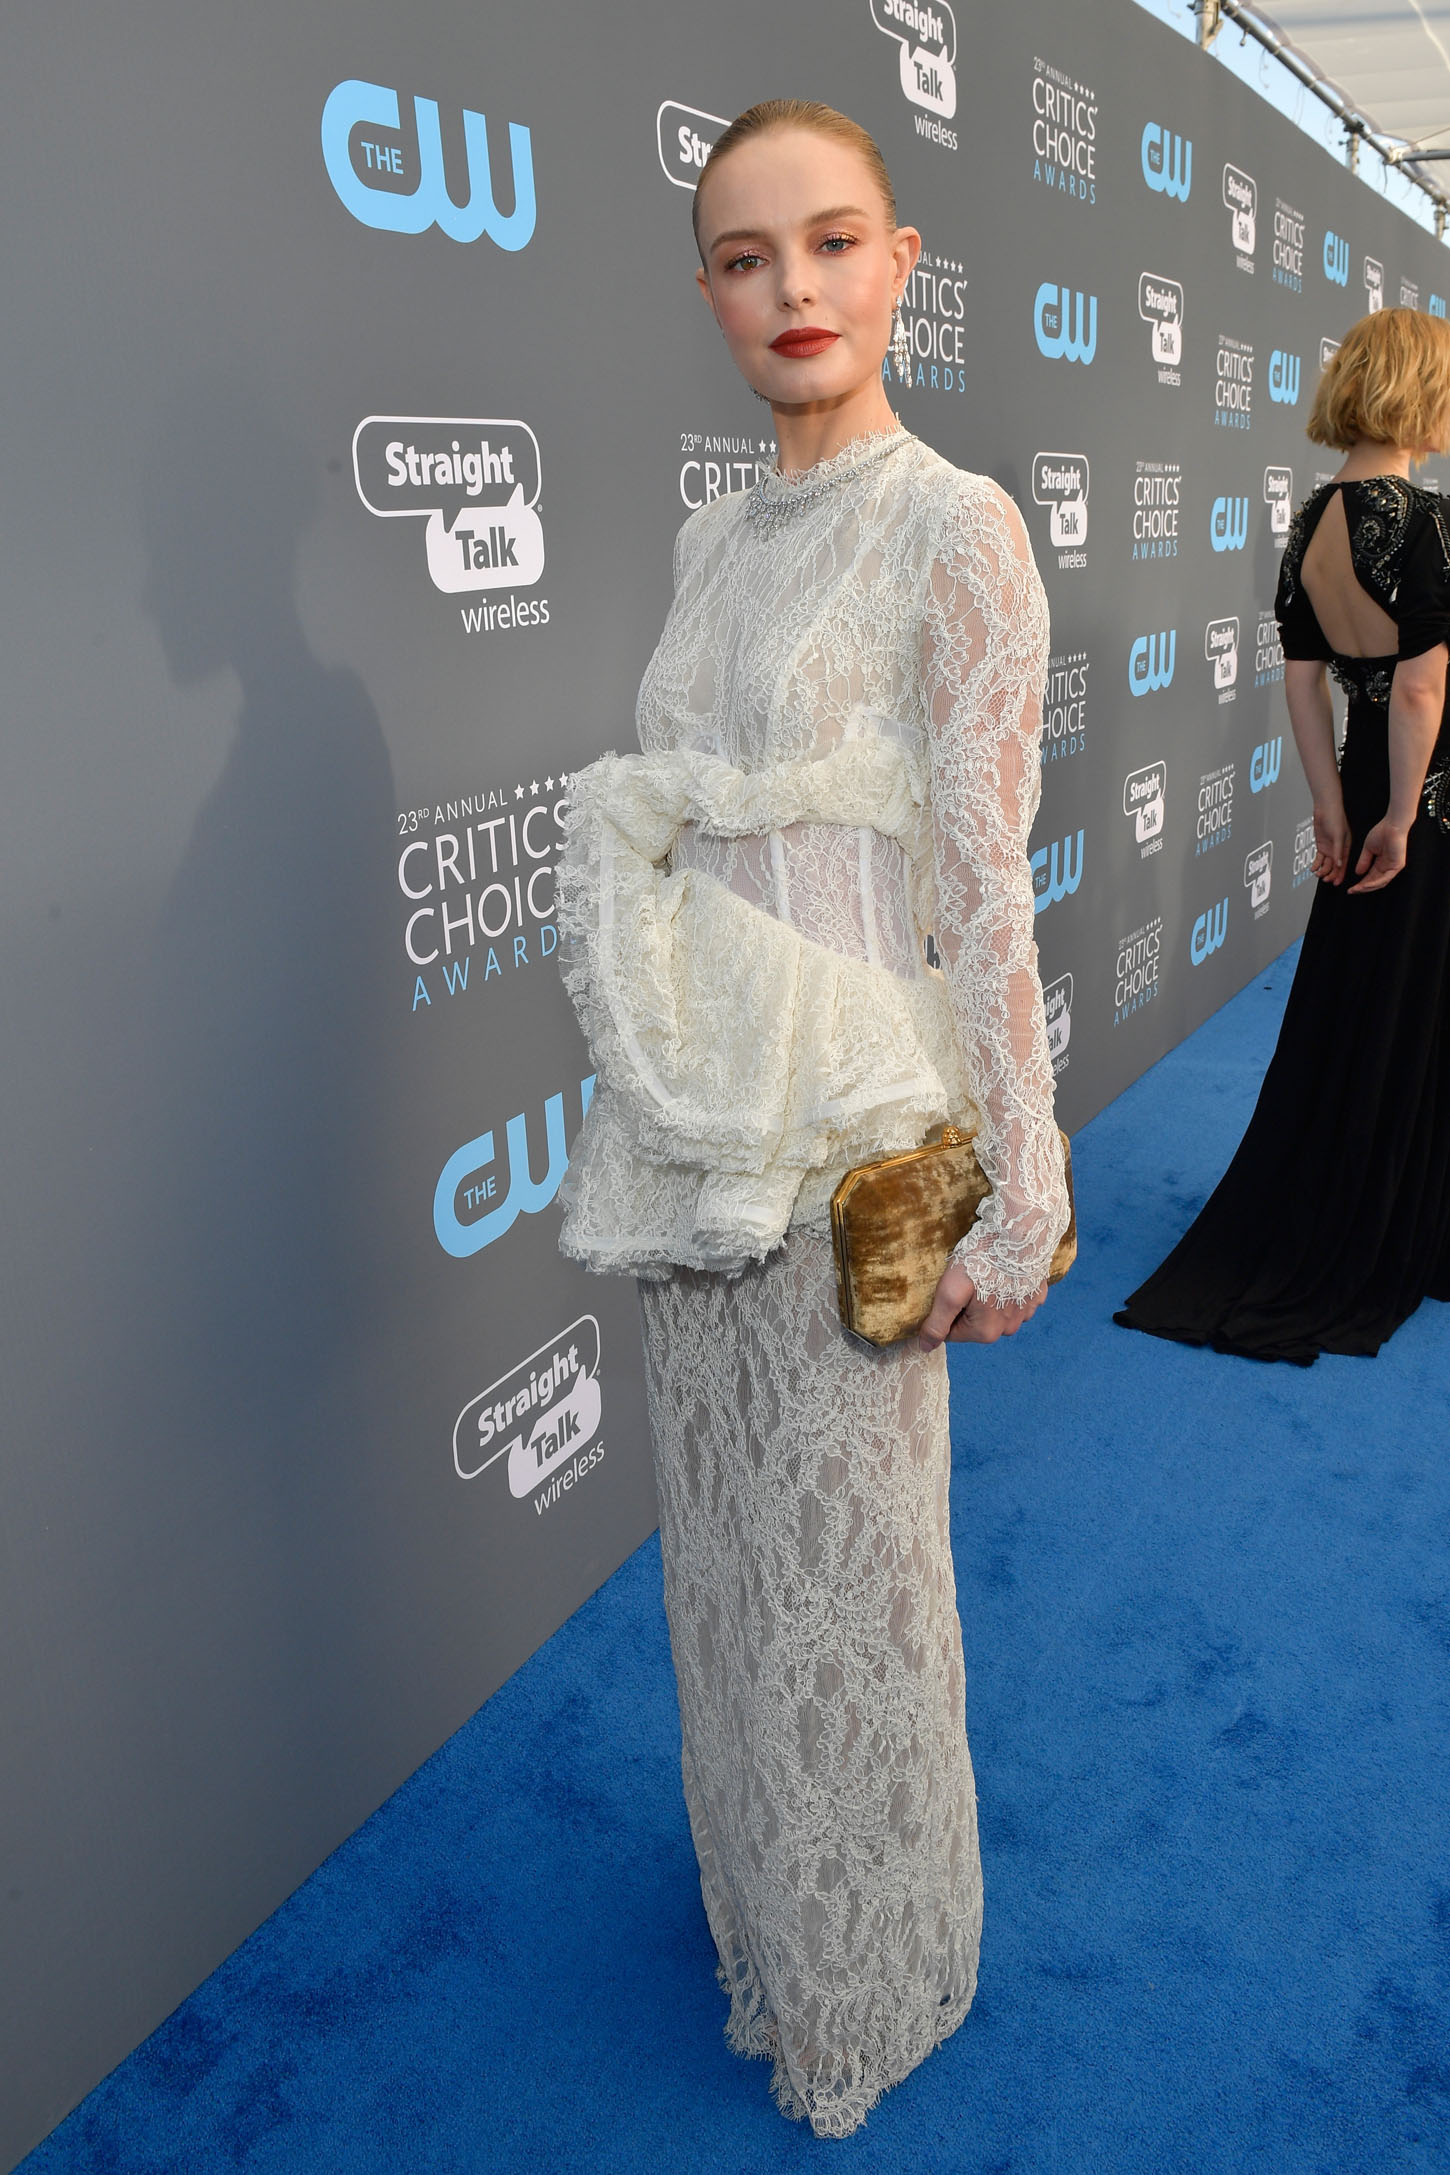 SANTA MONICA, CA - JANUARY 11:  Actor Kate Bosworth attends The 23rd Annual Critics' Choice Awards at Barker Hangar on January 11, 2018 in Santa Monica, California.  (Photo by Matt Winkelmeyer/Getty Images for The Critics' Choice Awards  )